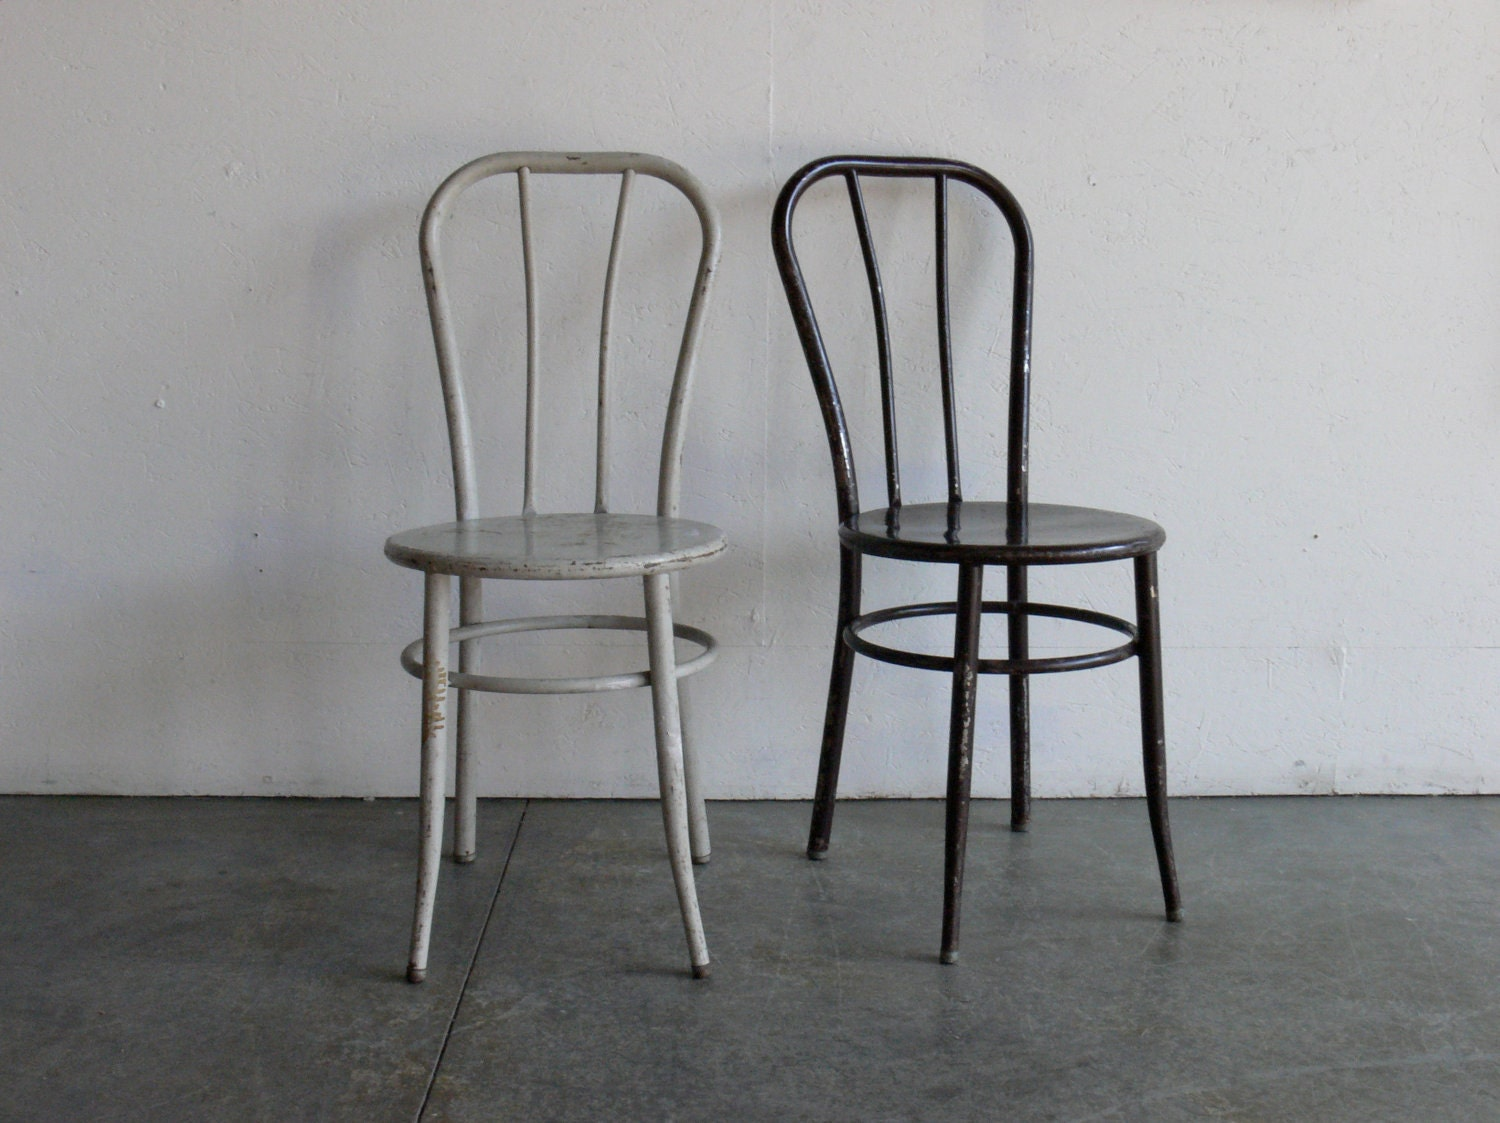 Vintage Industrial Metal Cafe Chairs Set Of 2